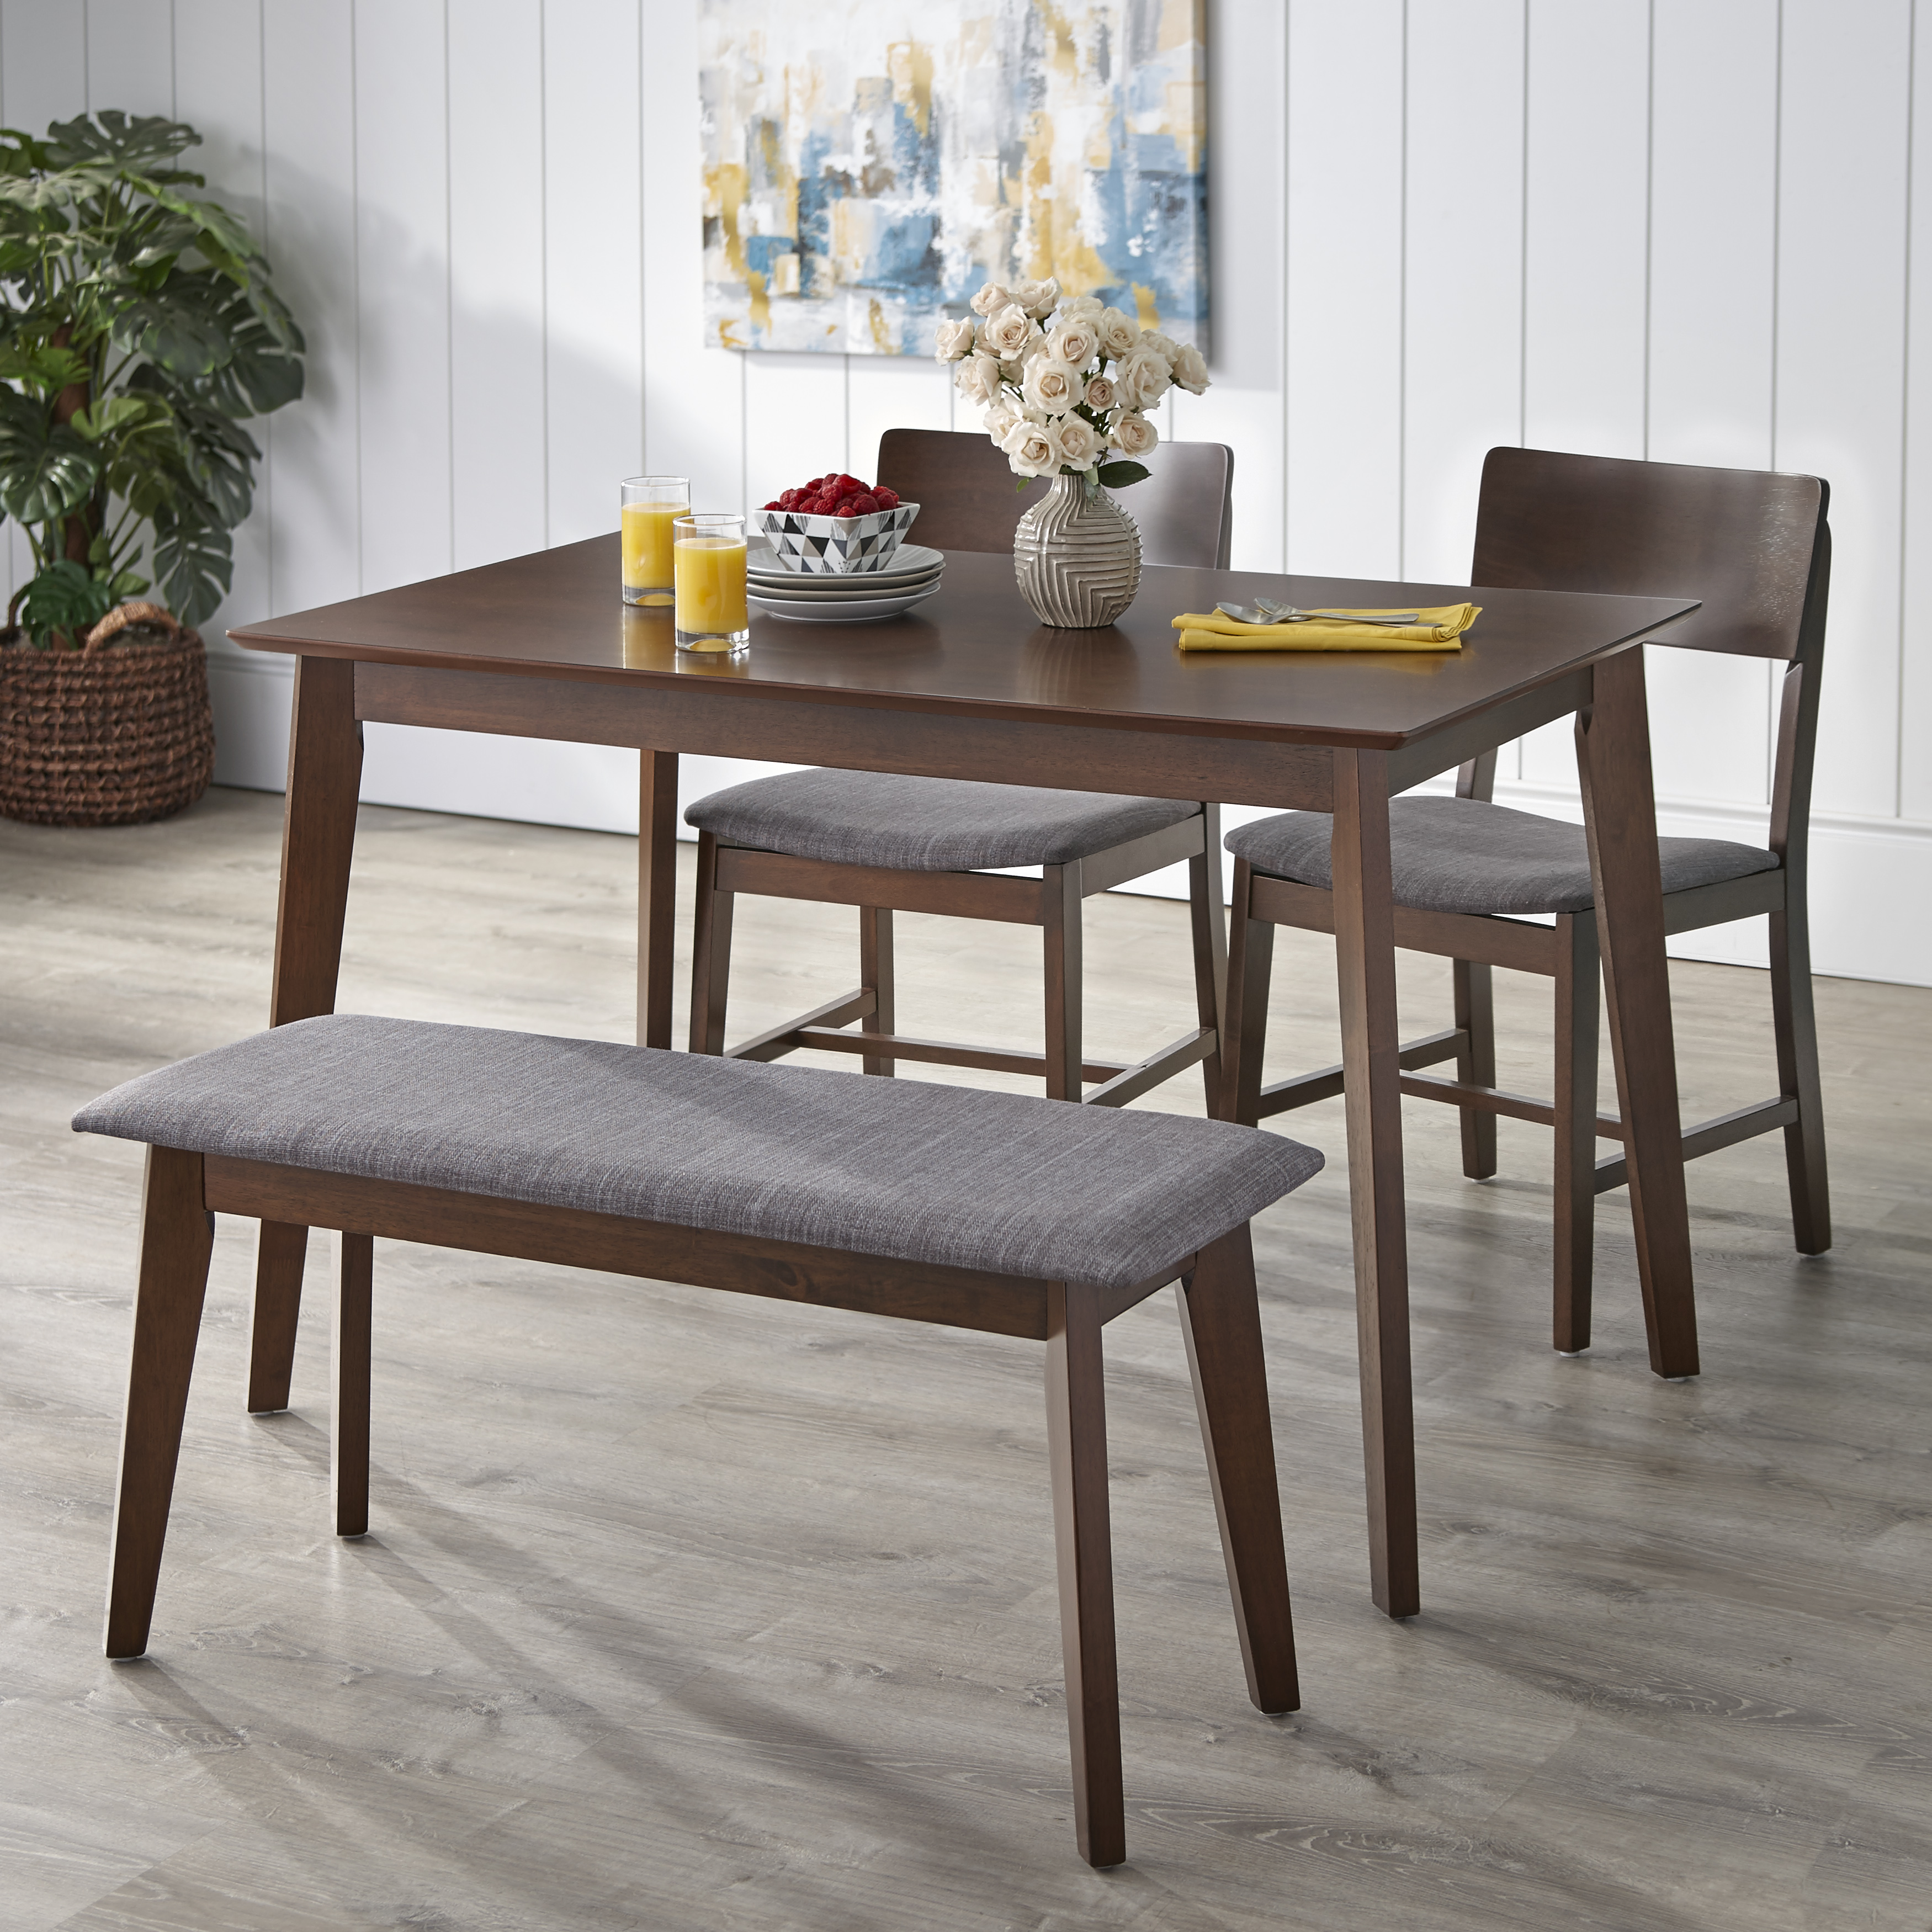 TMS Tiara 4 Piece Dining Set with Bench, Multiple Colors